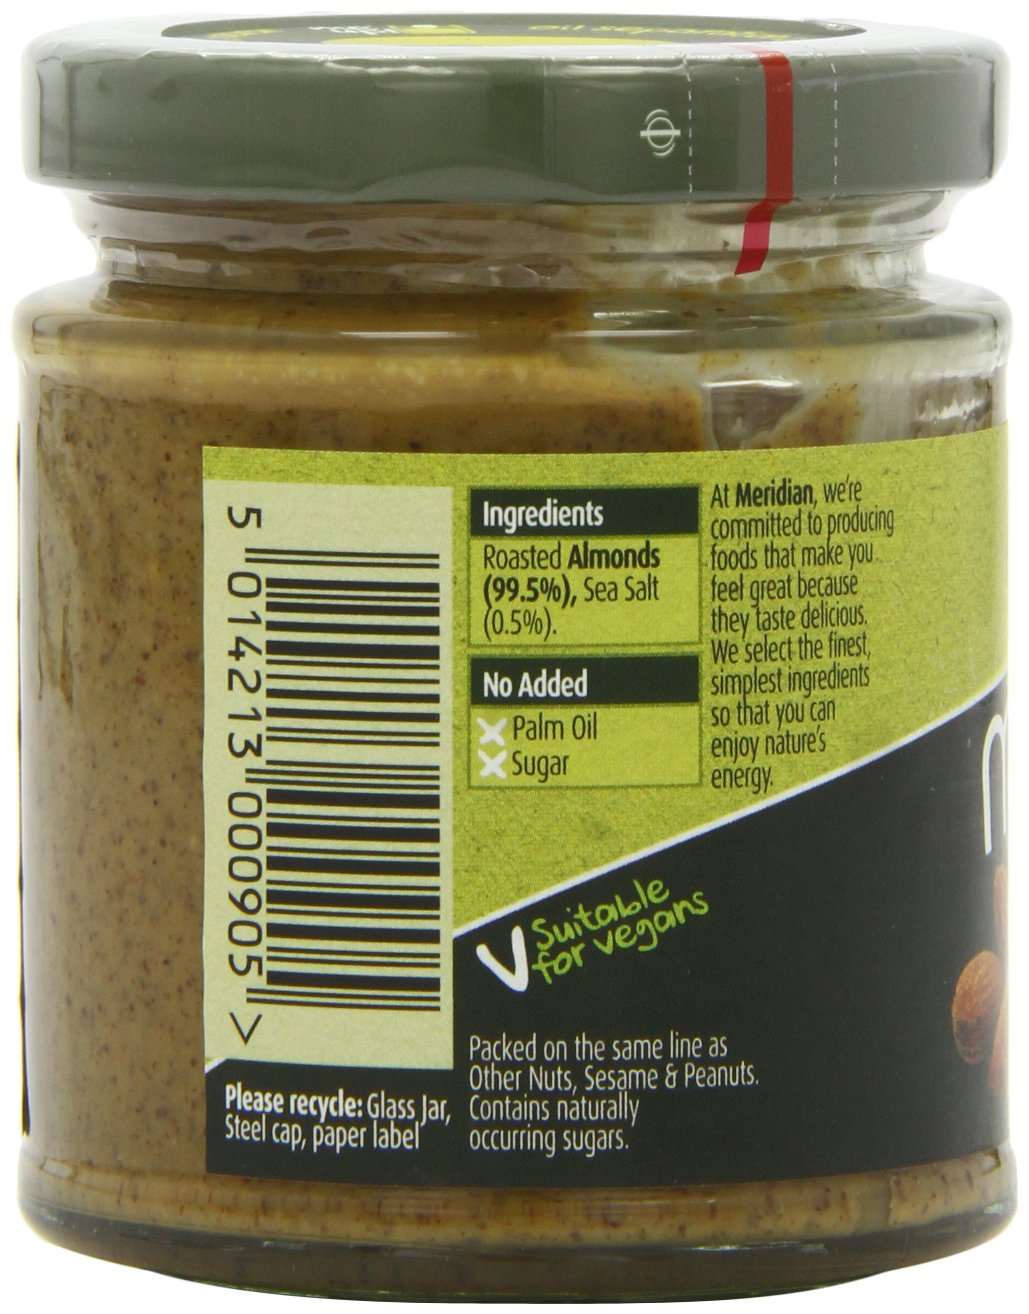 Amazon.com: Meridian - Natural Almond Butter Smooth With Salt 100% - 170g: Computers & Accessories